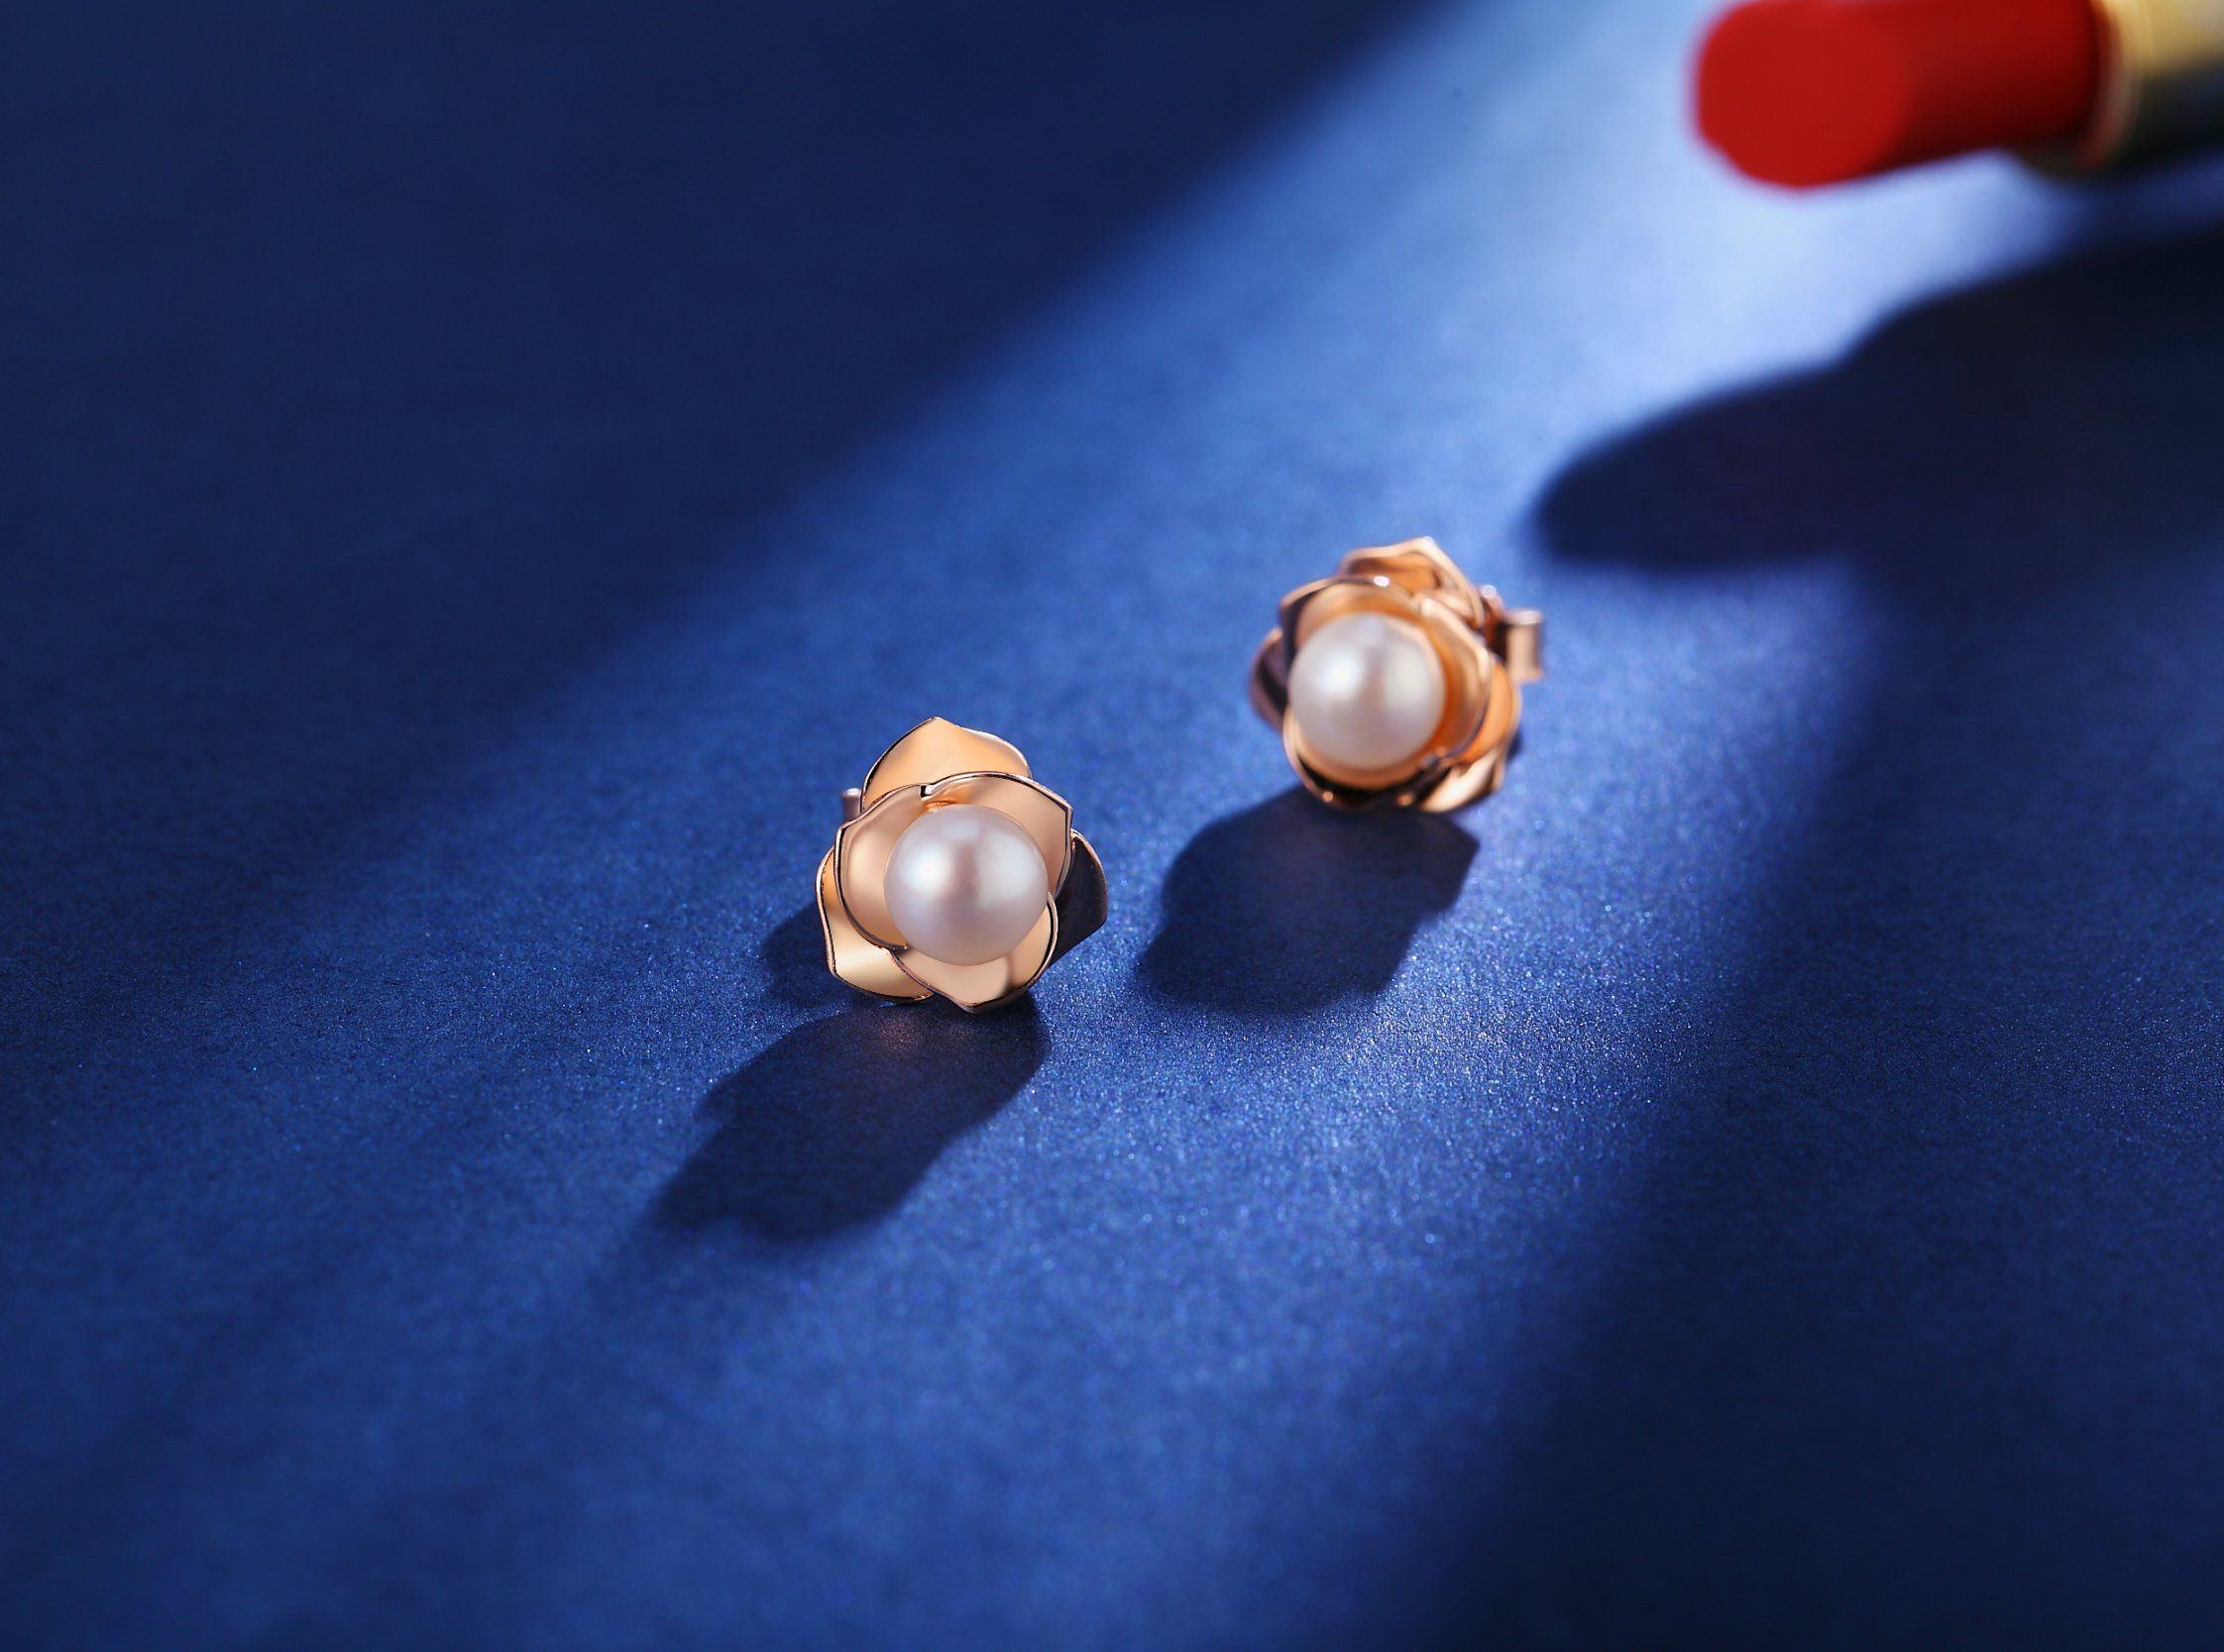 14k Rose Gold Plated Silver Rose Flower Ear Studs Freshwater Cultured Pearl Stud Earrings For Women Girls Stud Earrings Pearl Stud Earrings Rose Gold Plates